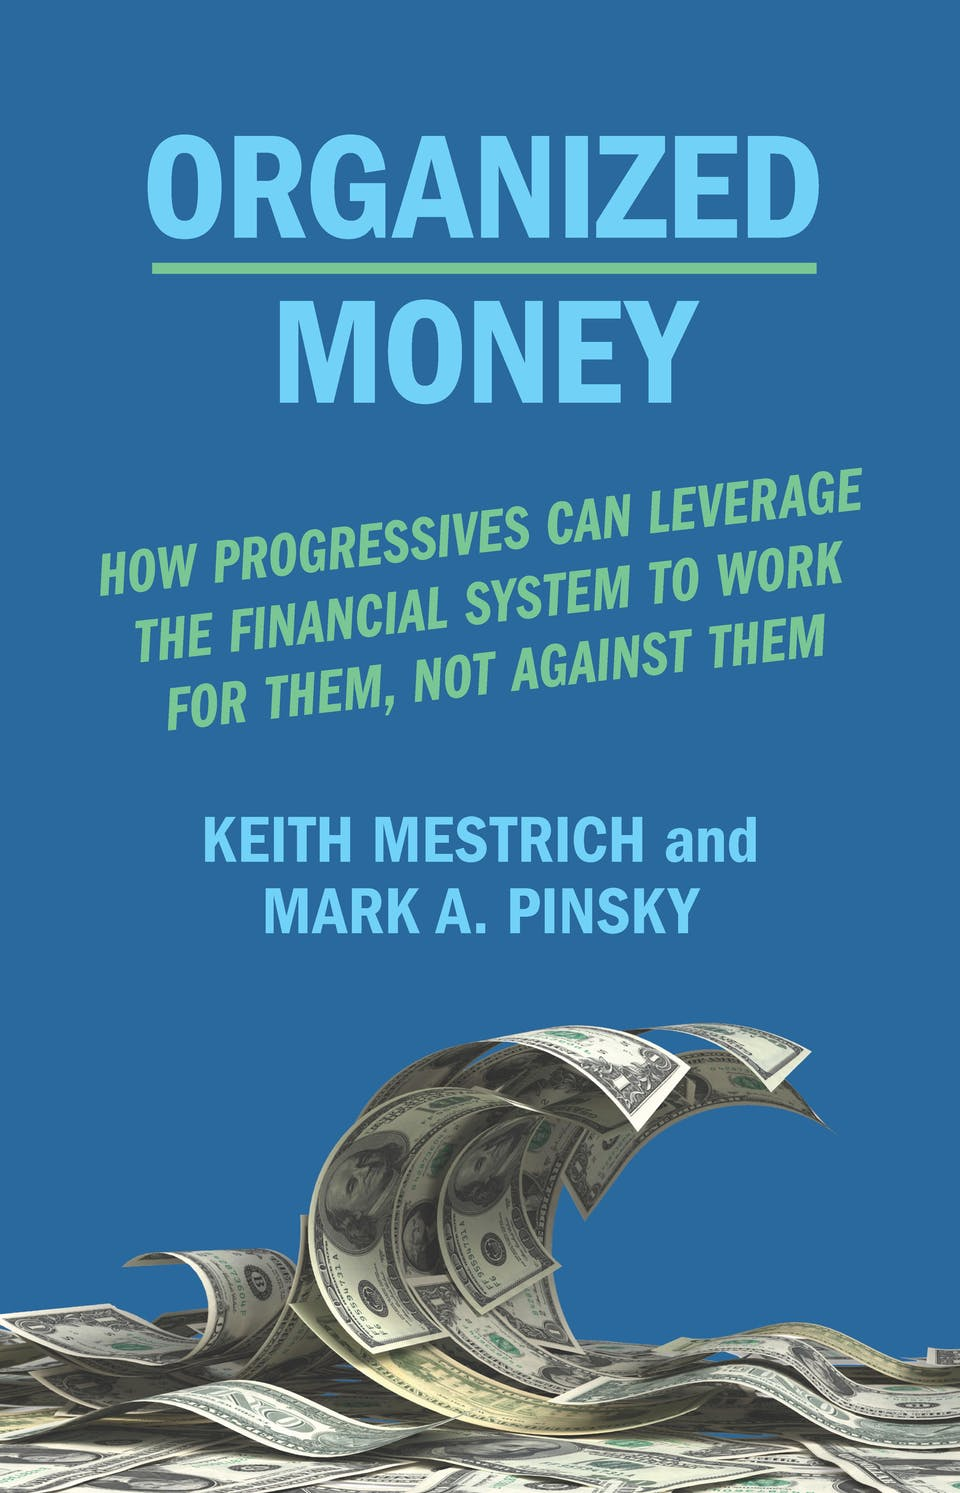 Organized Money: How Progressives Can Leverage the Financial System